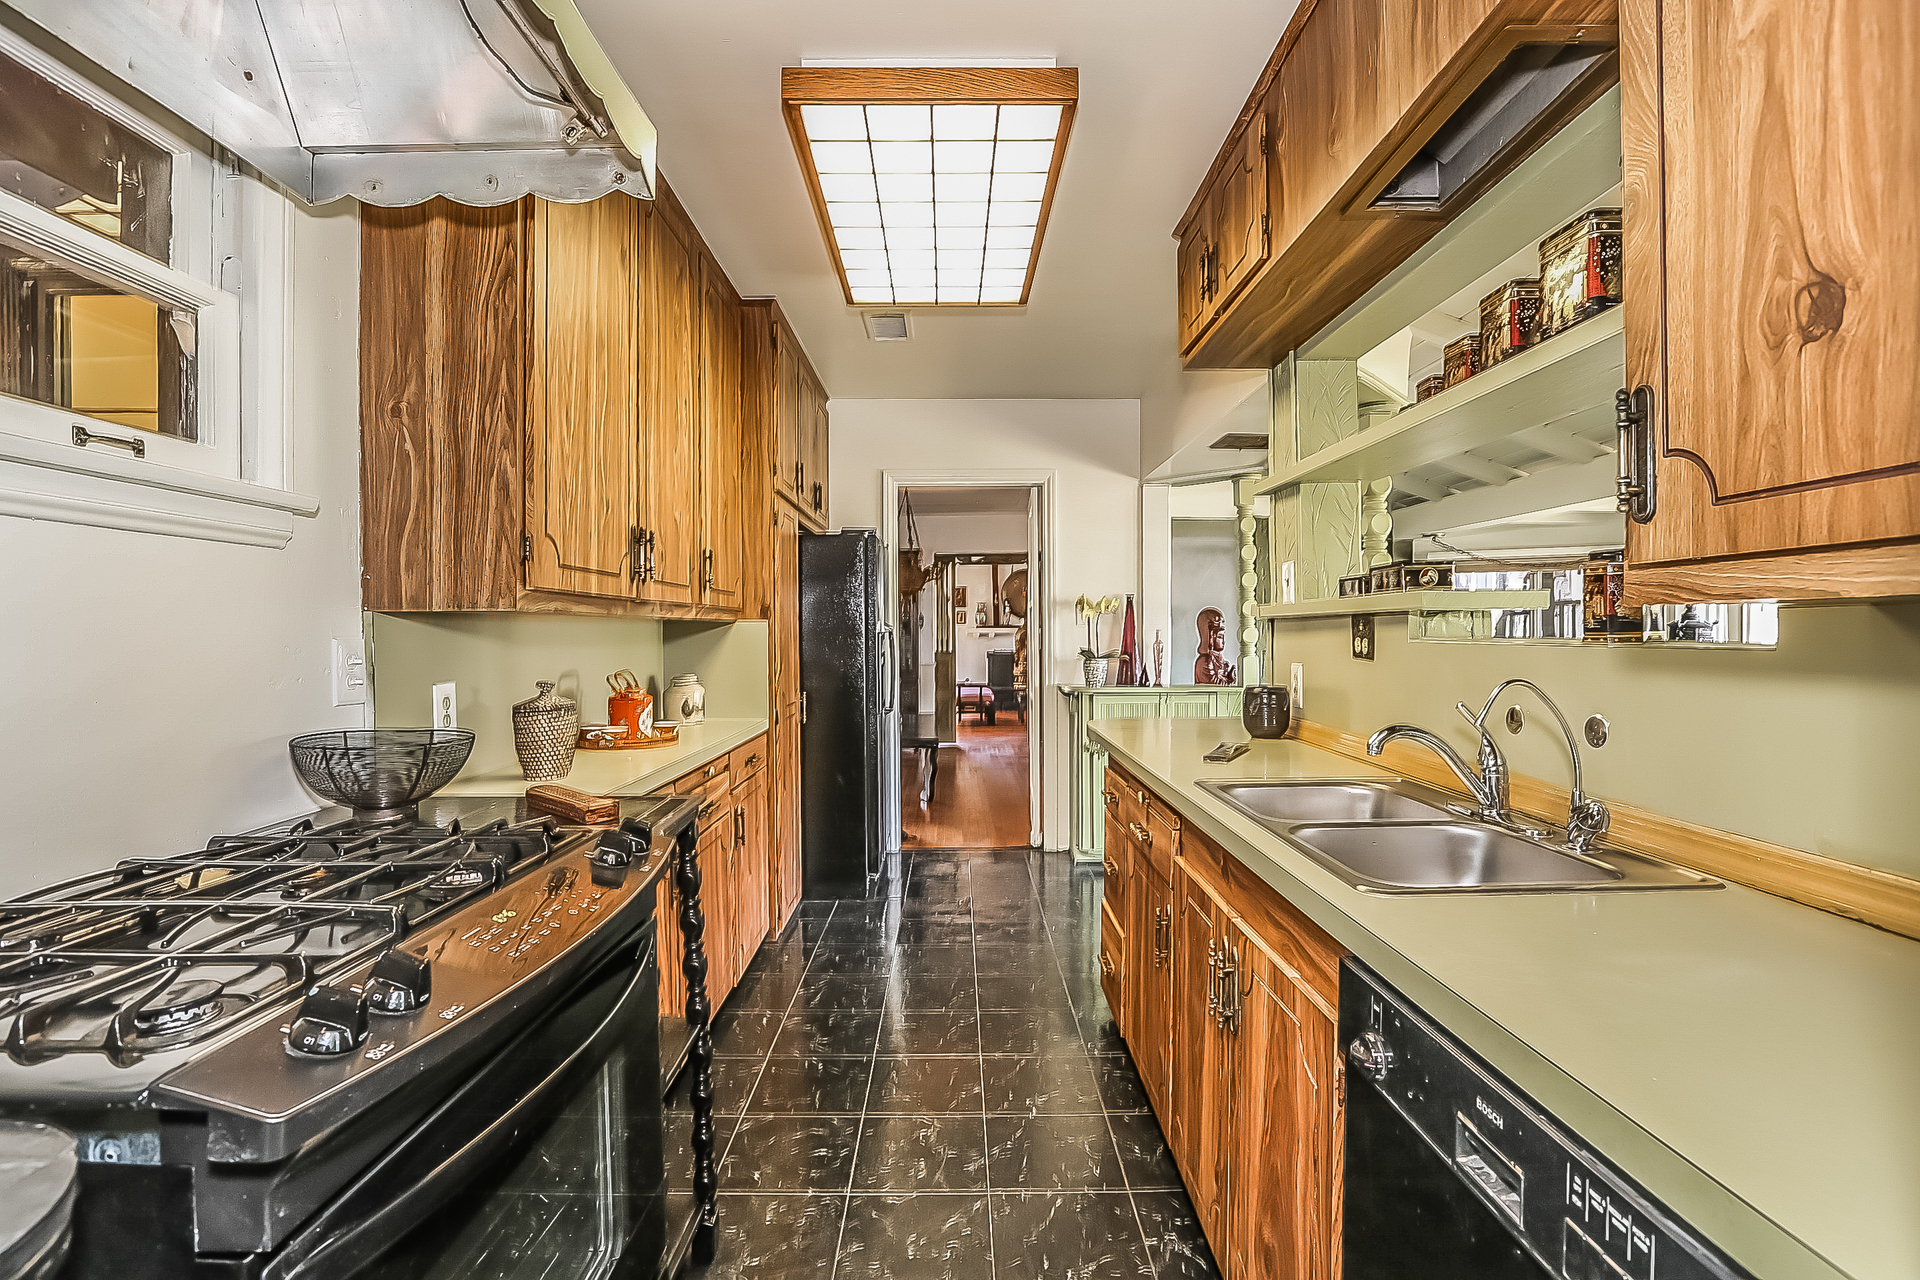 012-Kitchen-755797-medium.jpg